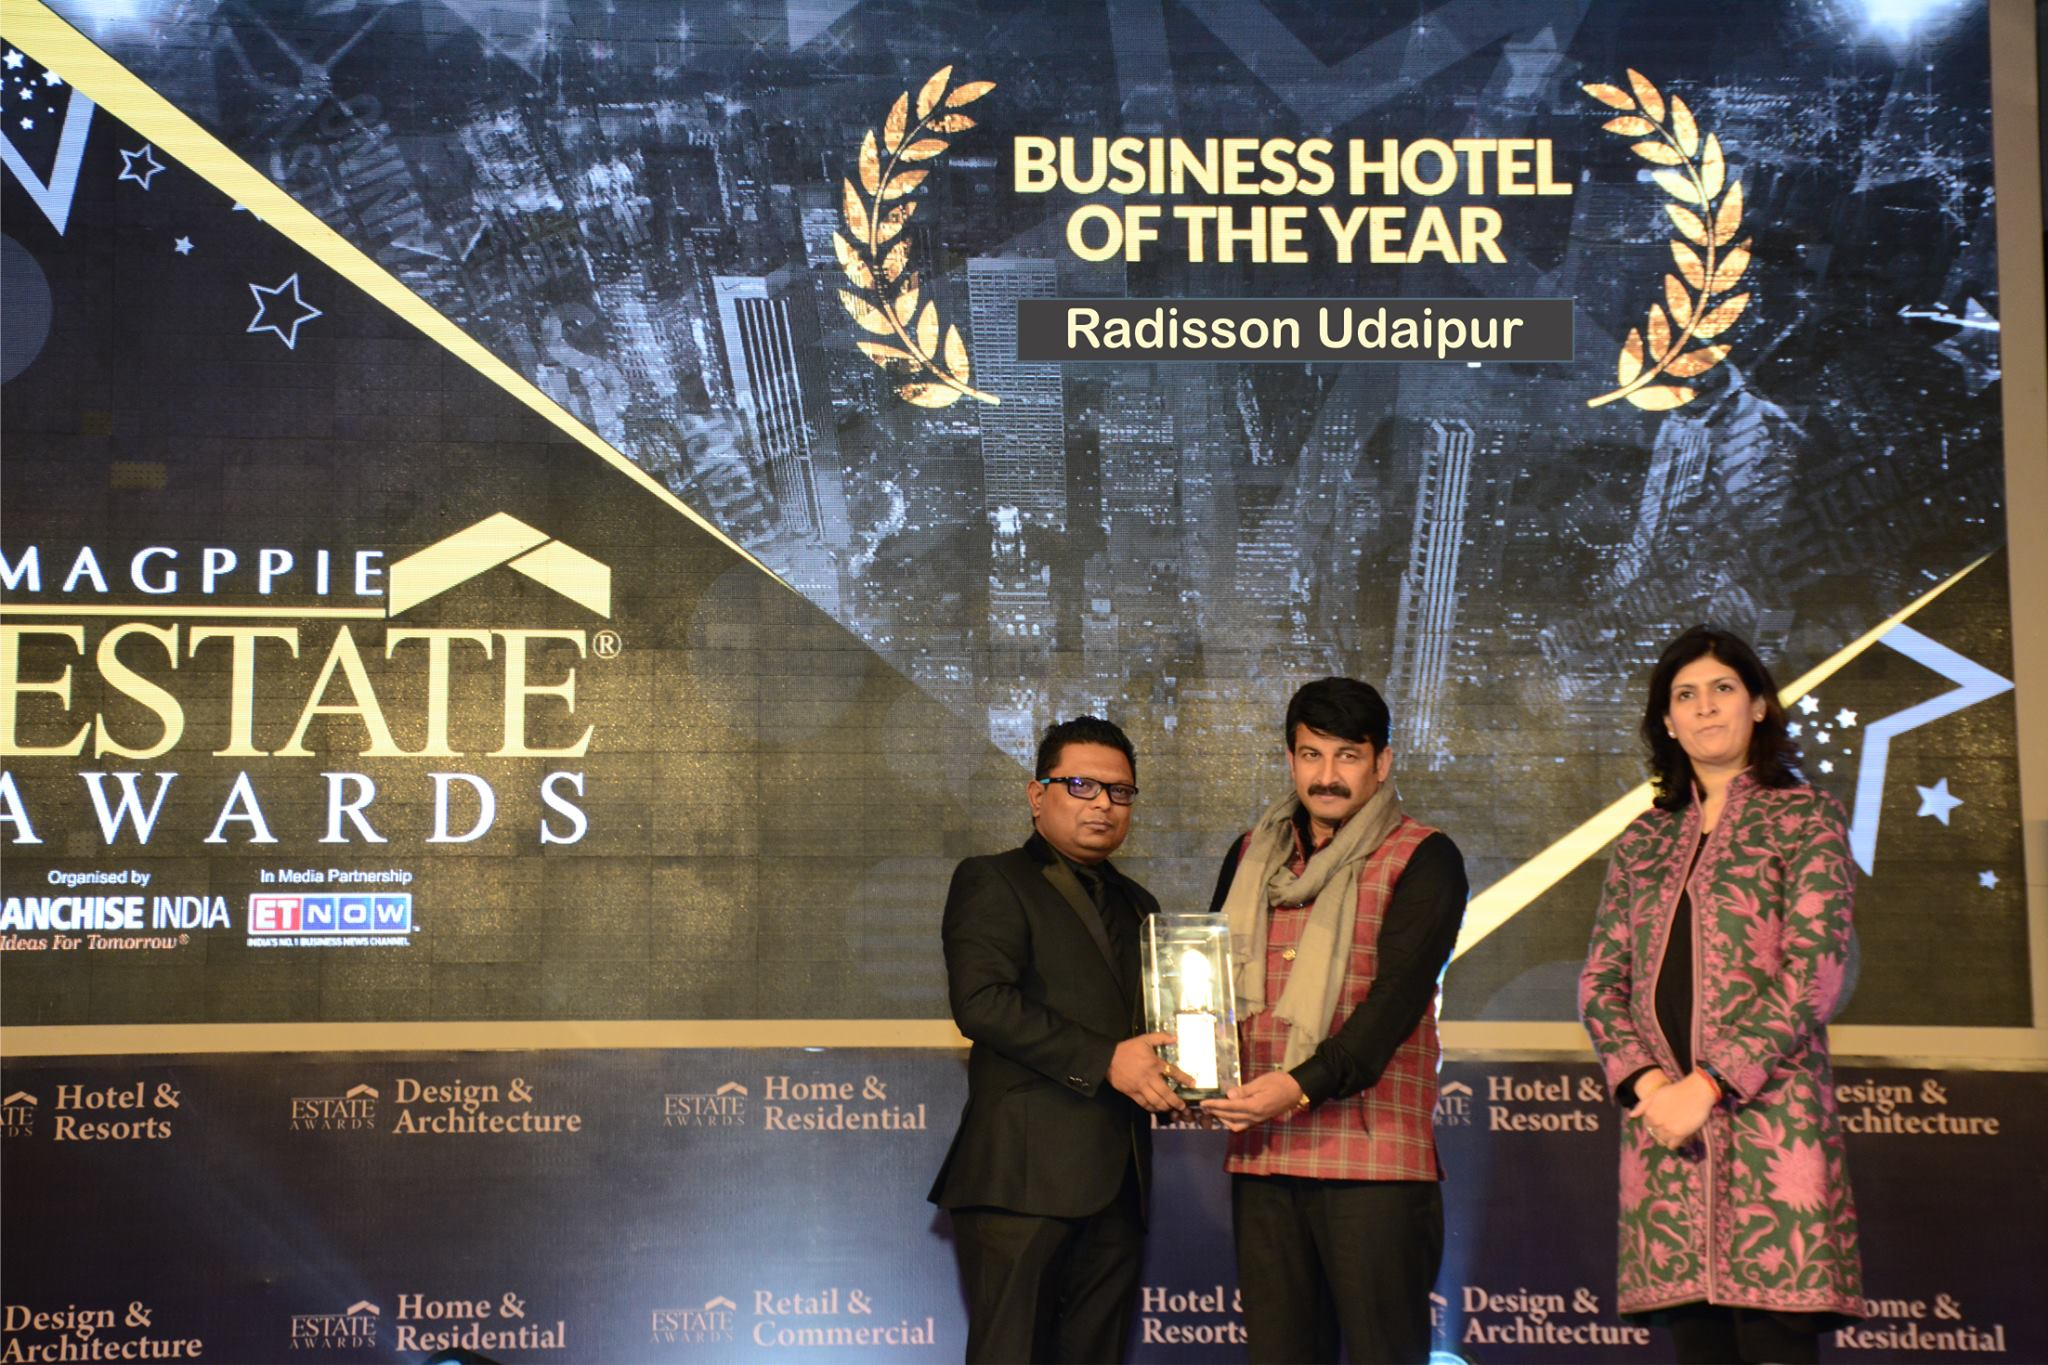 'Best Business Hotel Award 2016' goes to Radisson Udaipur